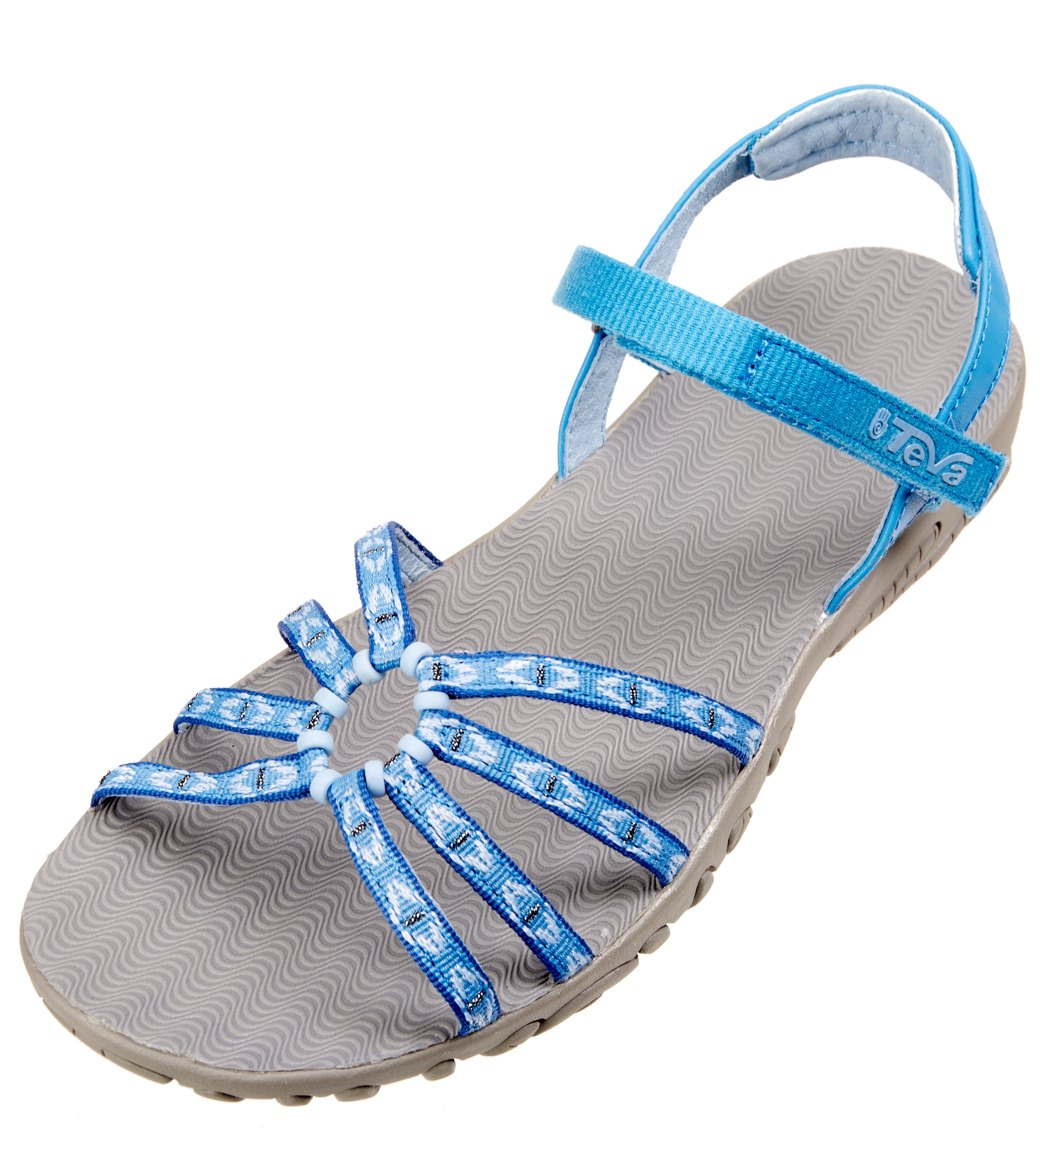 69e3c616a857 Teva Women s Kayenta Sandal at SwimOutlet.com - Free Shipping